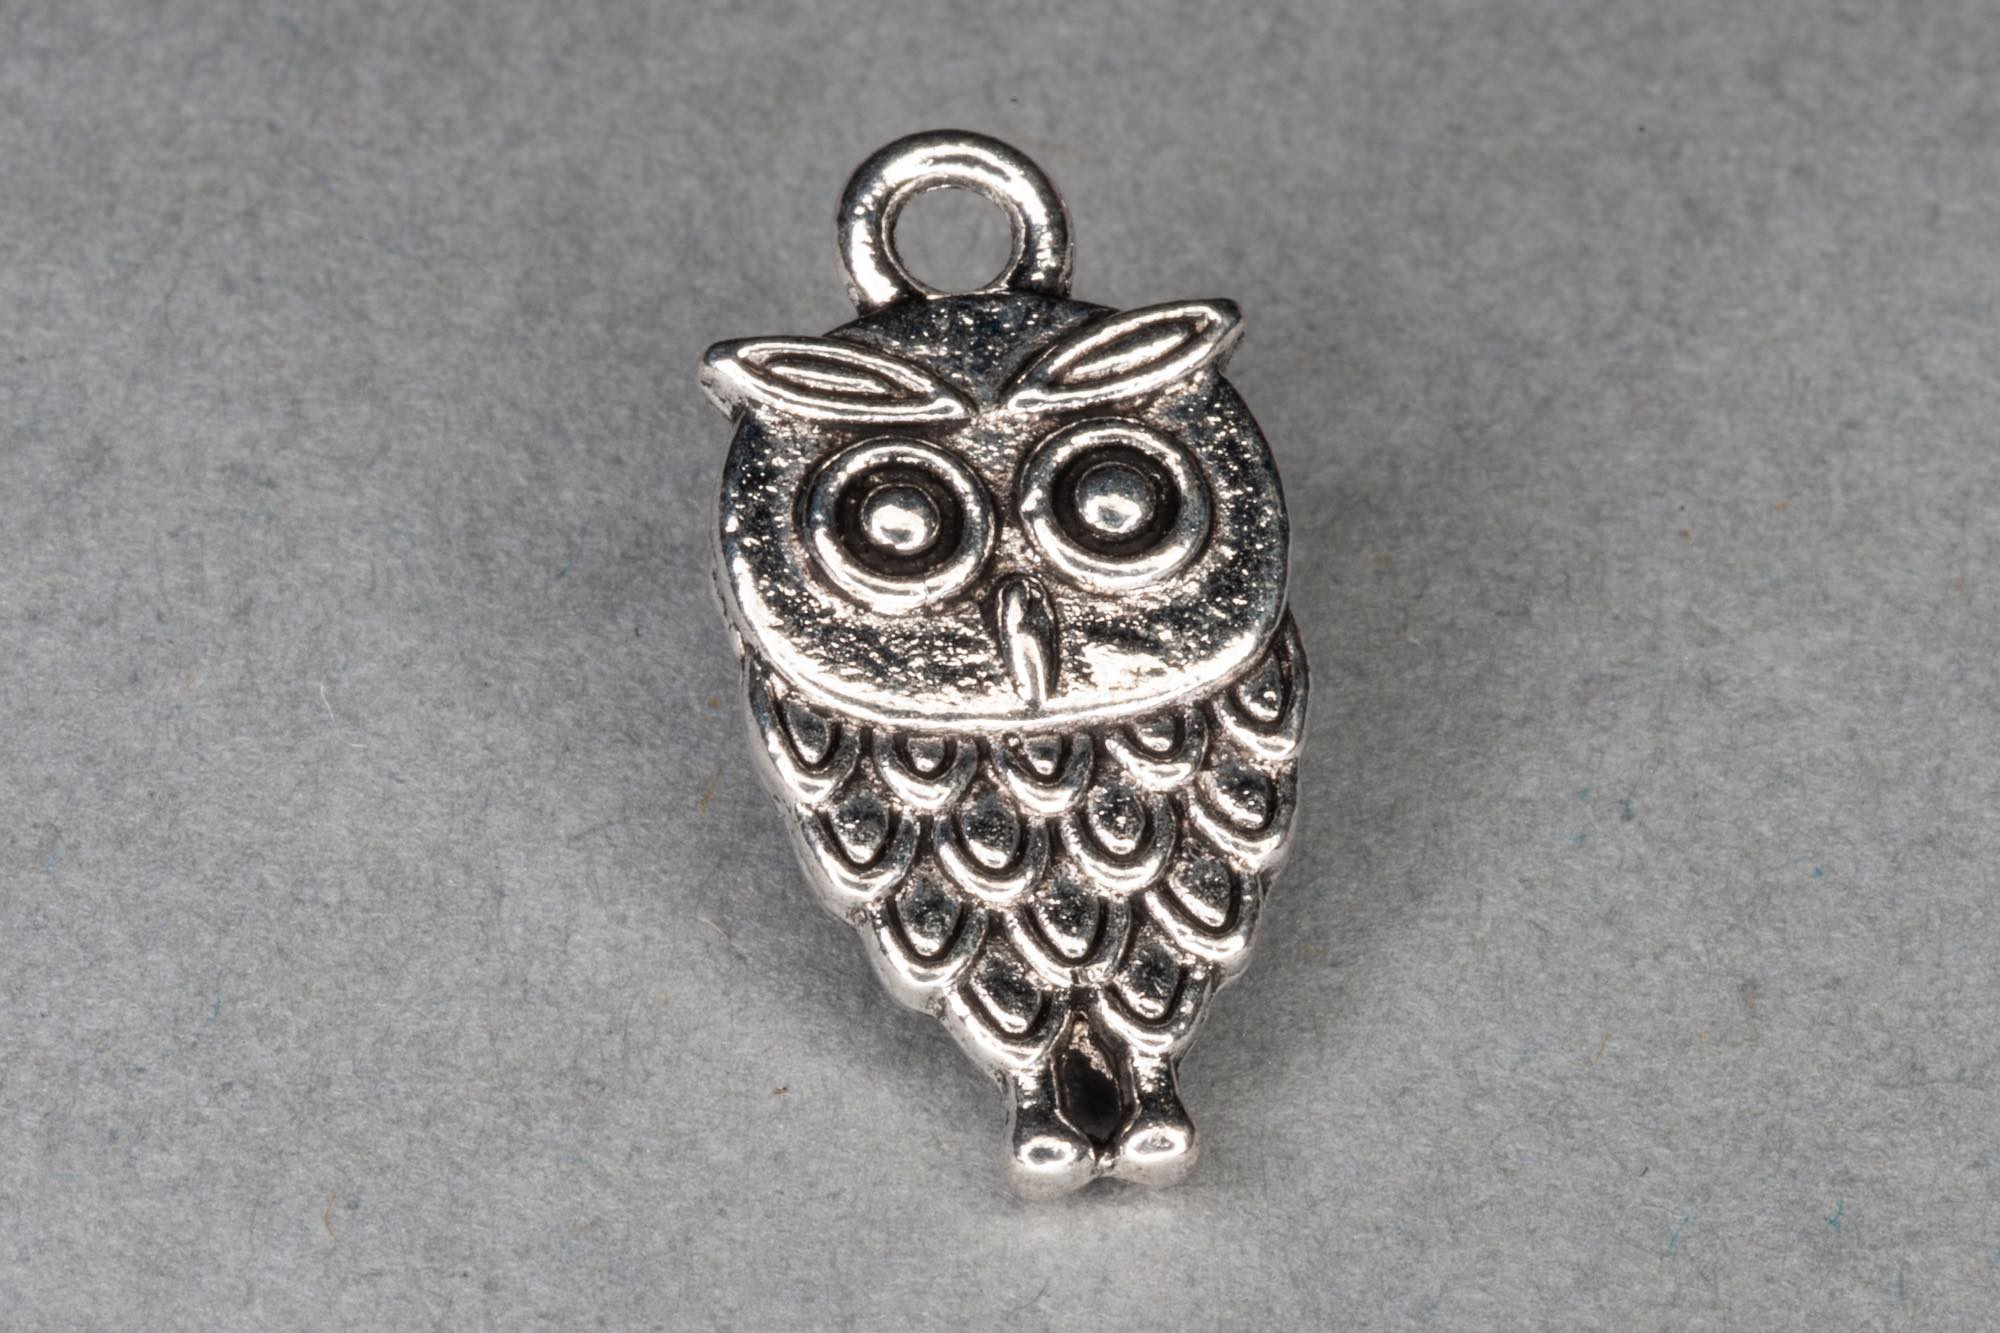 Antique Silver Owl Charm 19x10mm